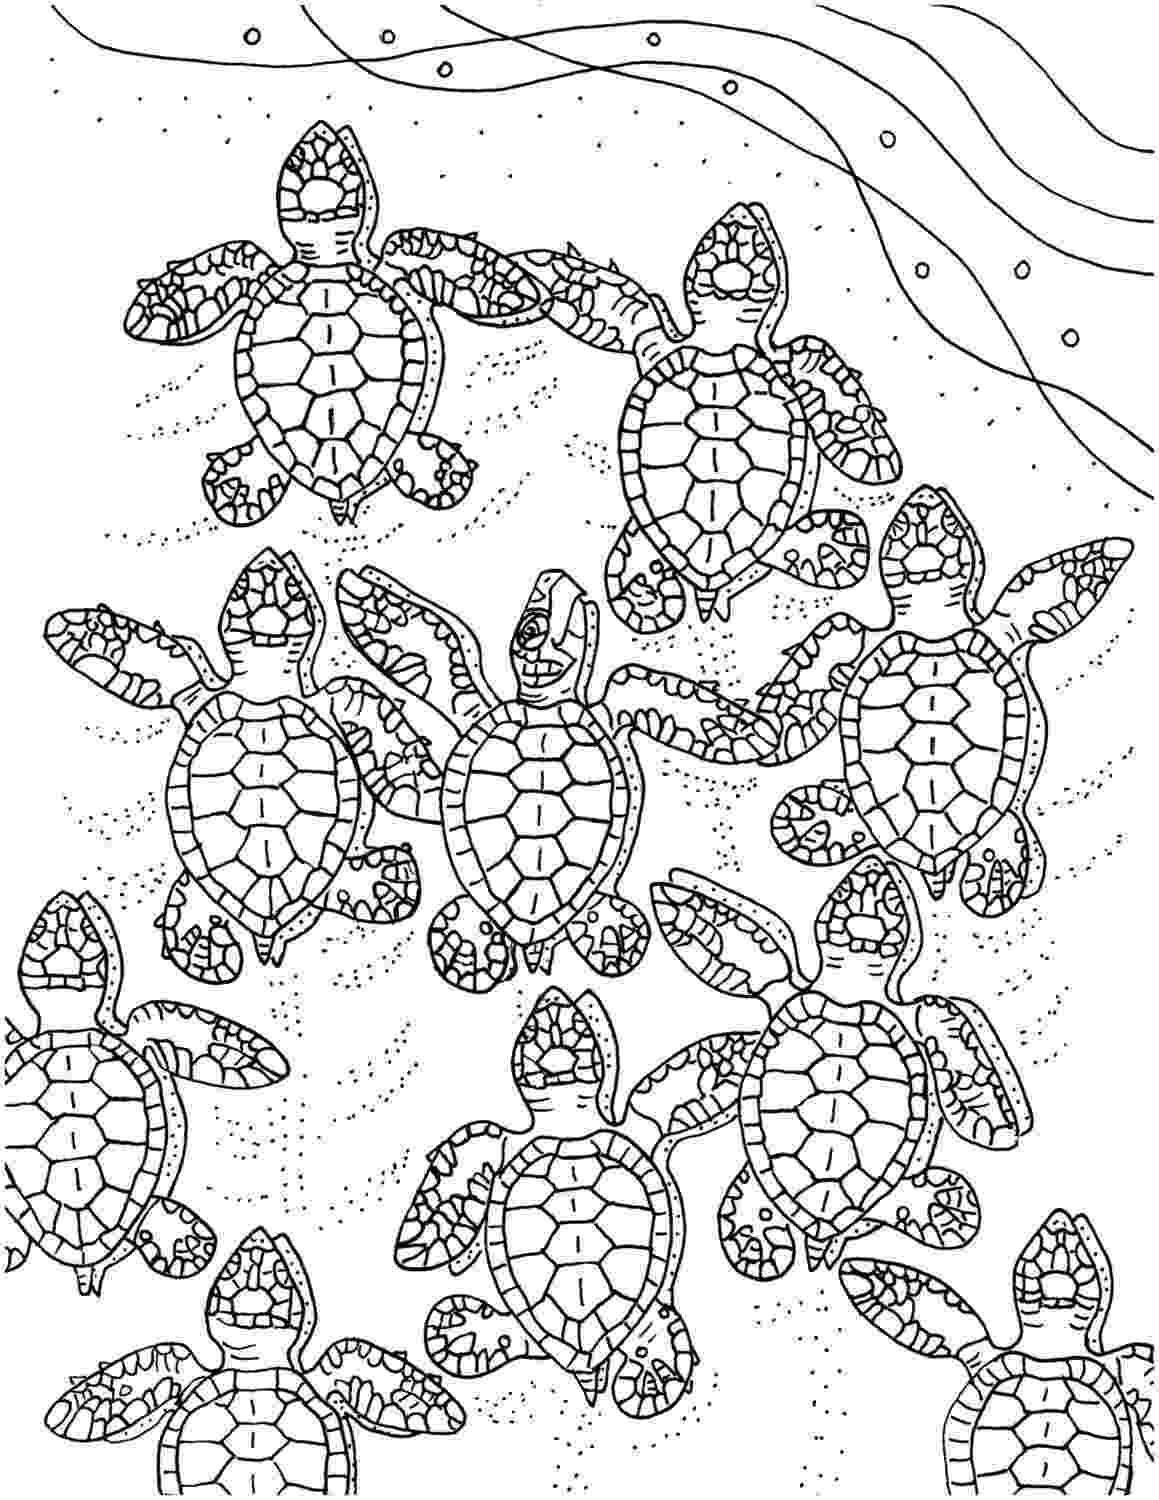 coloring page of turtle baby sea turtles coloring page embroidery pattern sea of coloring page turtle